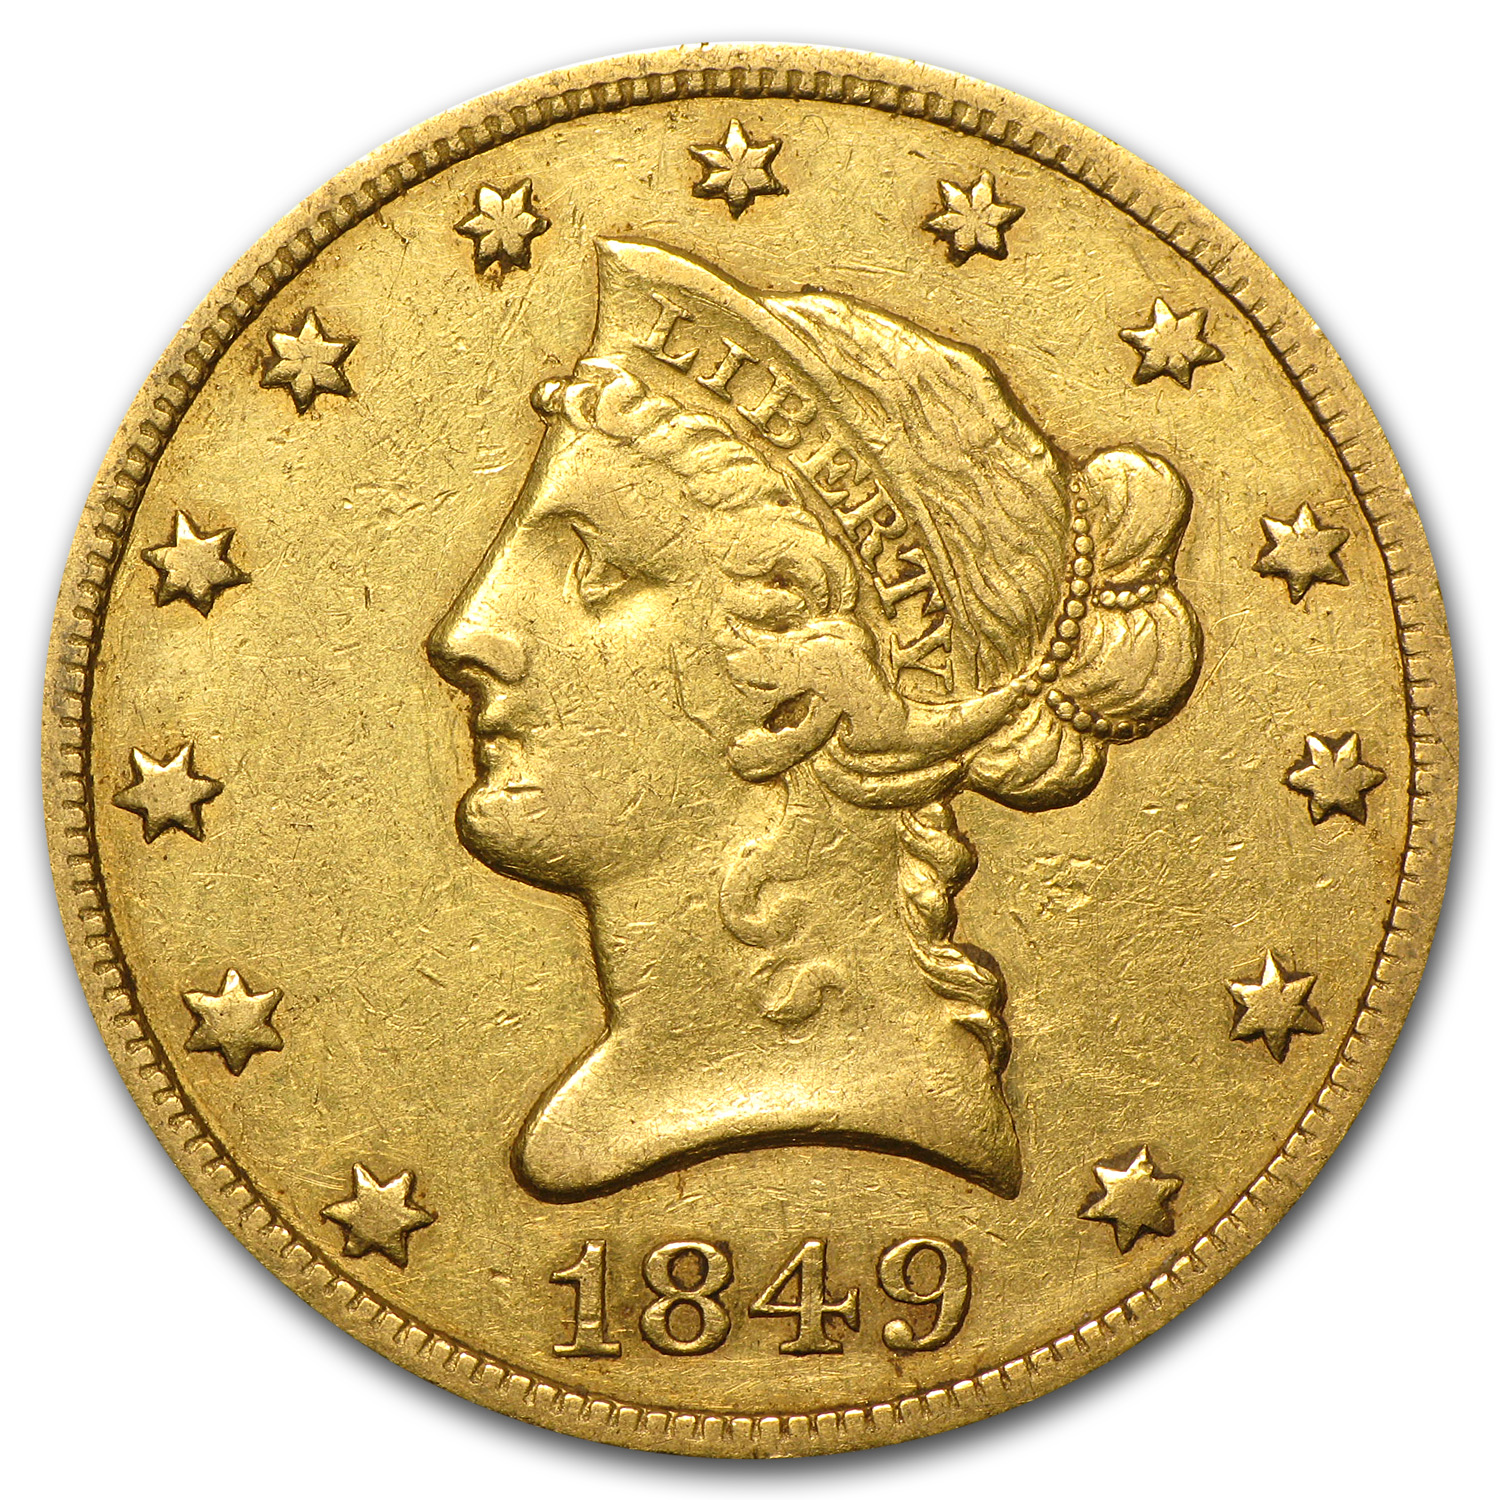 1849 $10 Liberty Gold Eagle - Very Fine